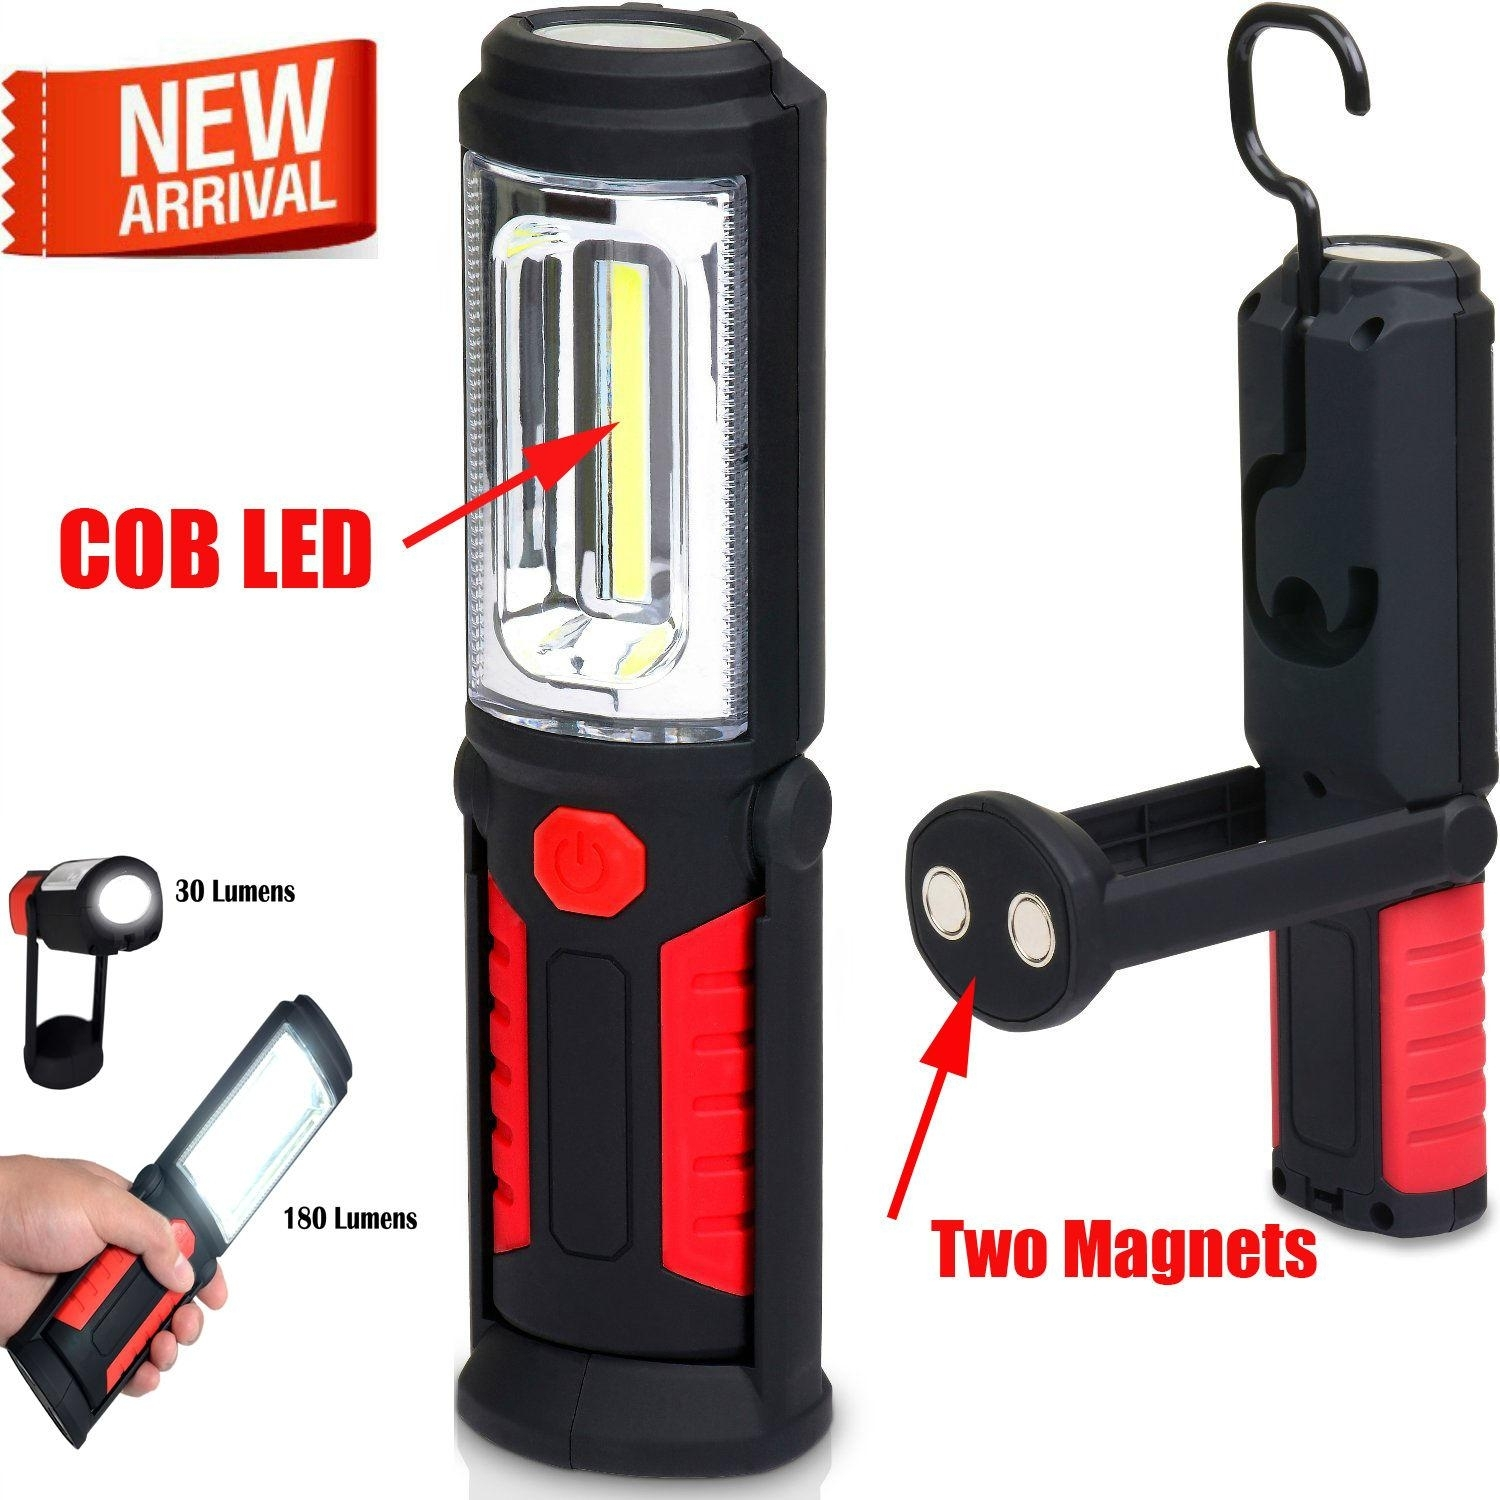 Led Magnetic Work Light Cob Stand Hook Inspection Hanging Flashlight Intended For Outdoor Hanging Work Lights (View 4 of 15)